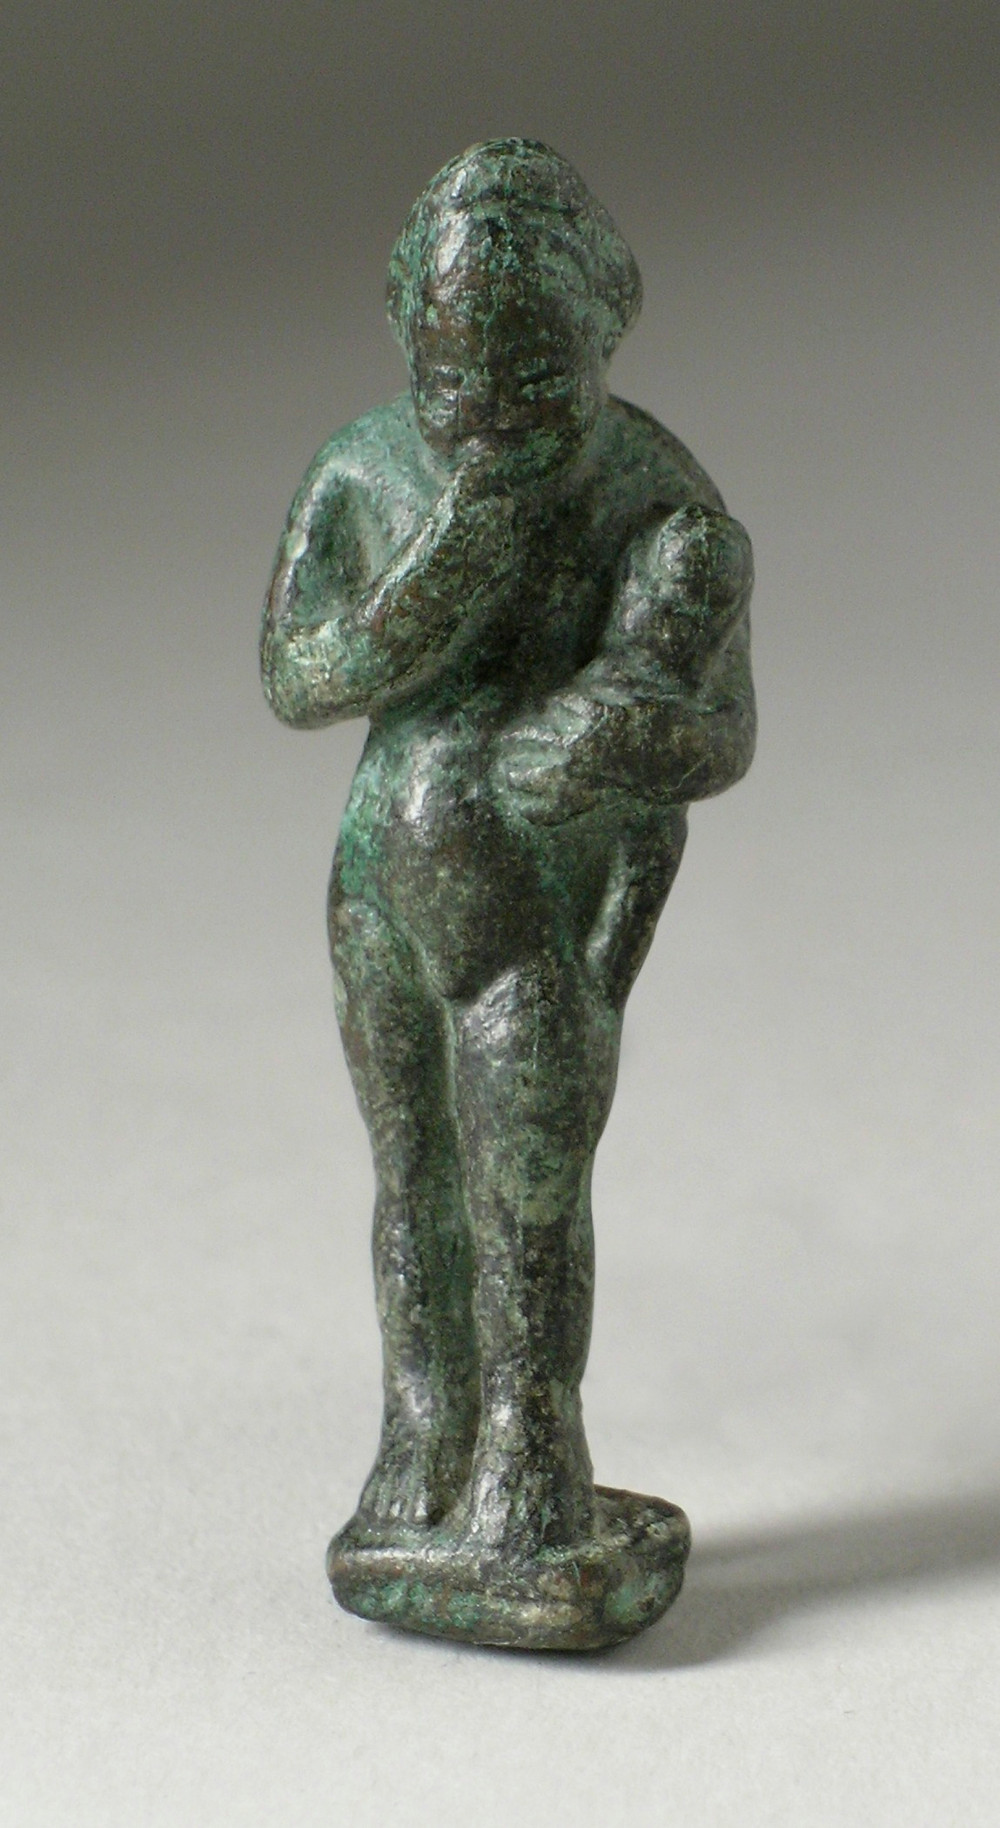 Egypt, Ptolemaic Period - early Roman Period (200 BCE - 100 CE).jpg